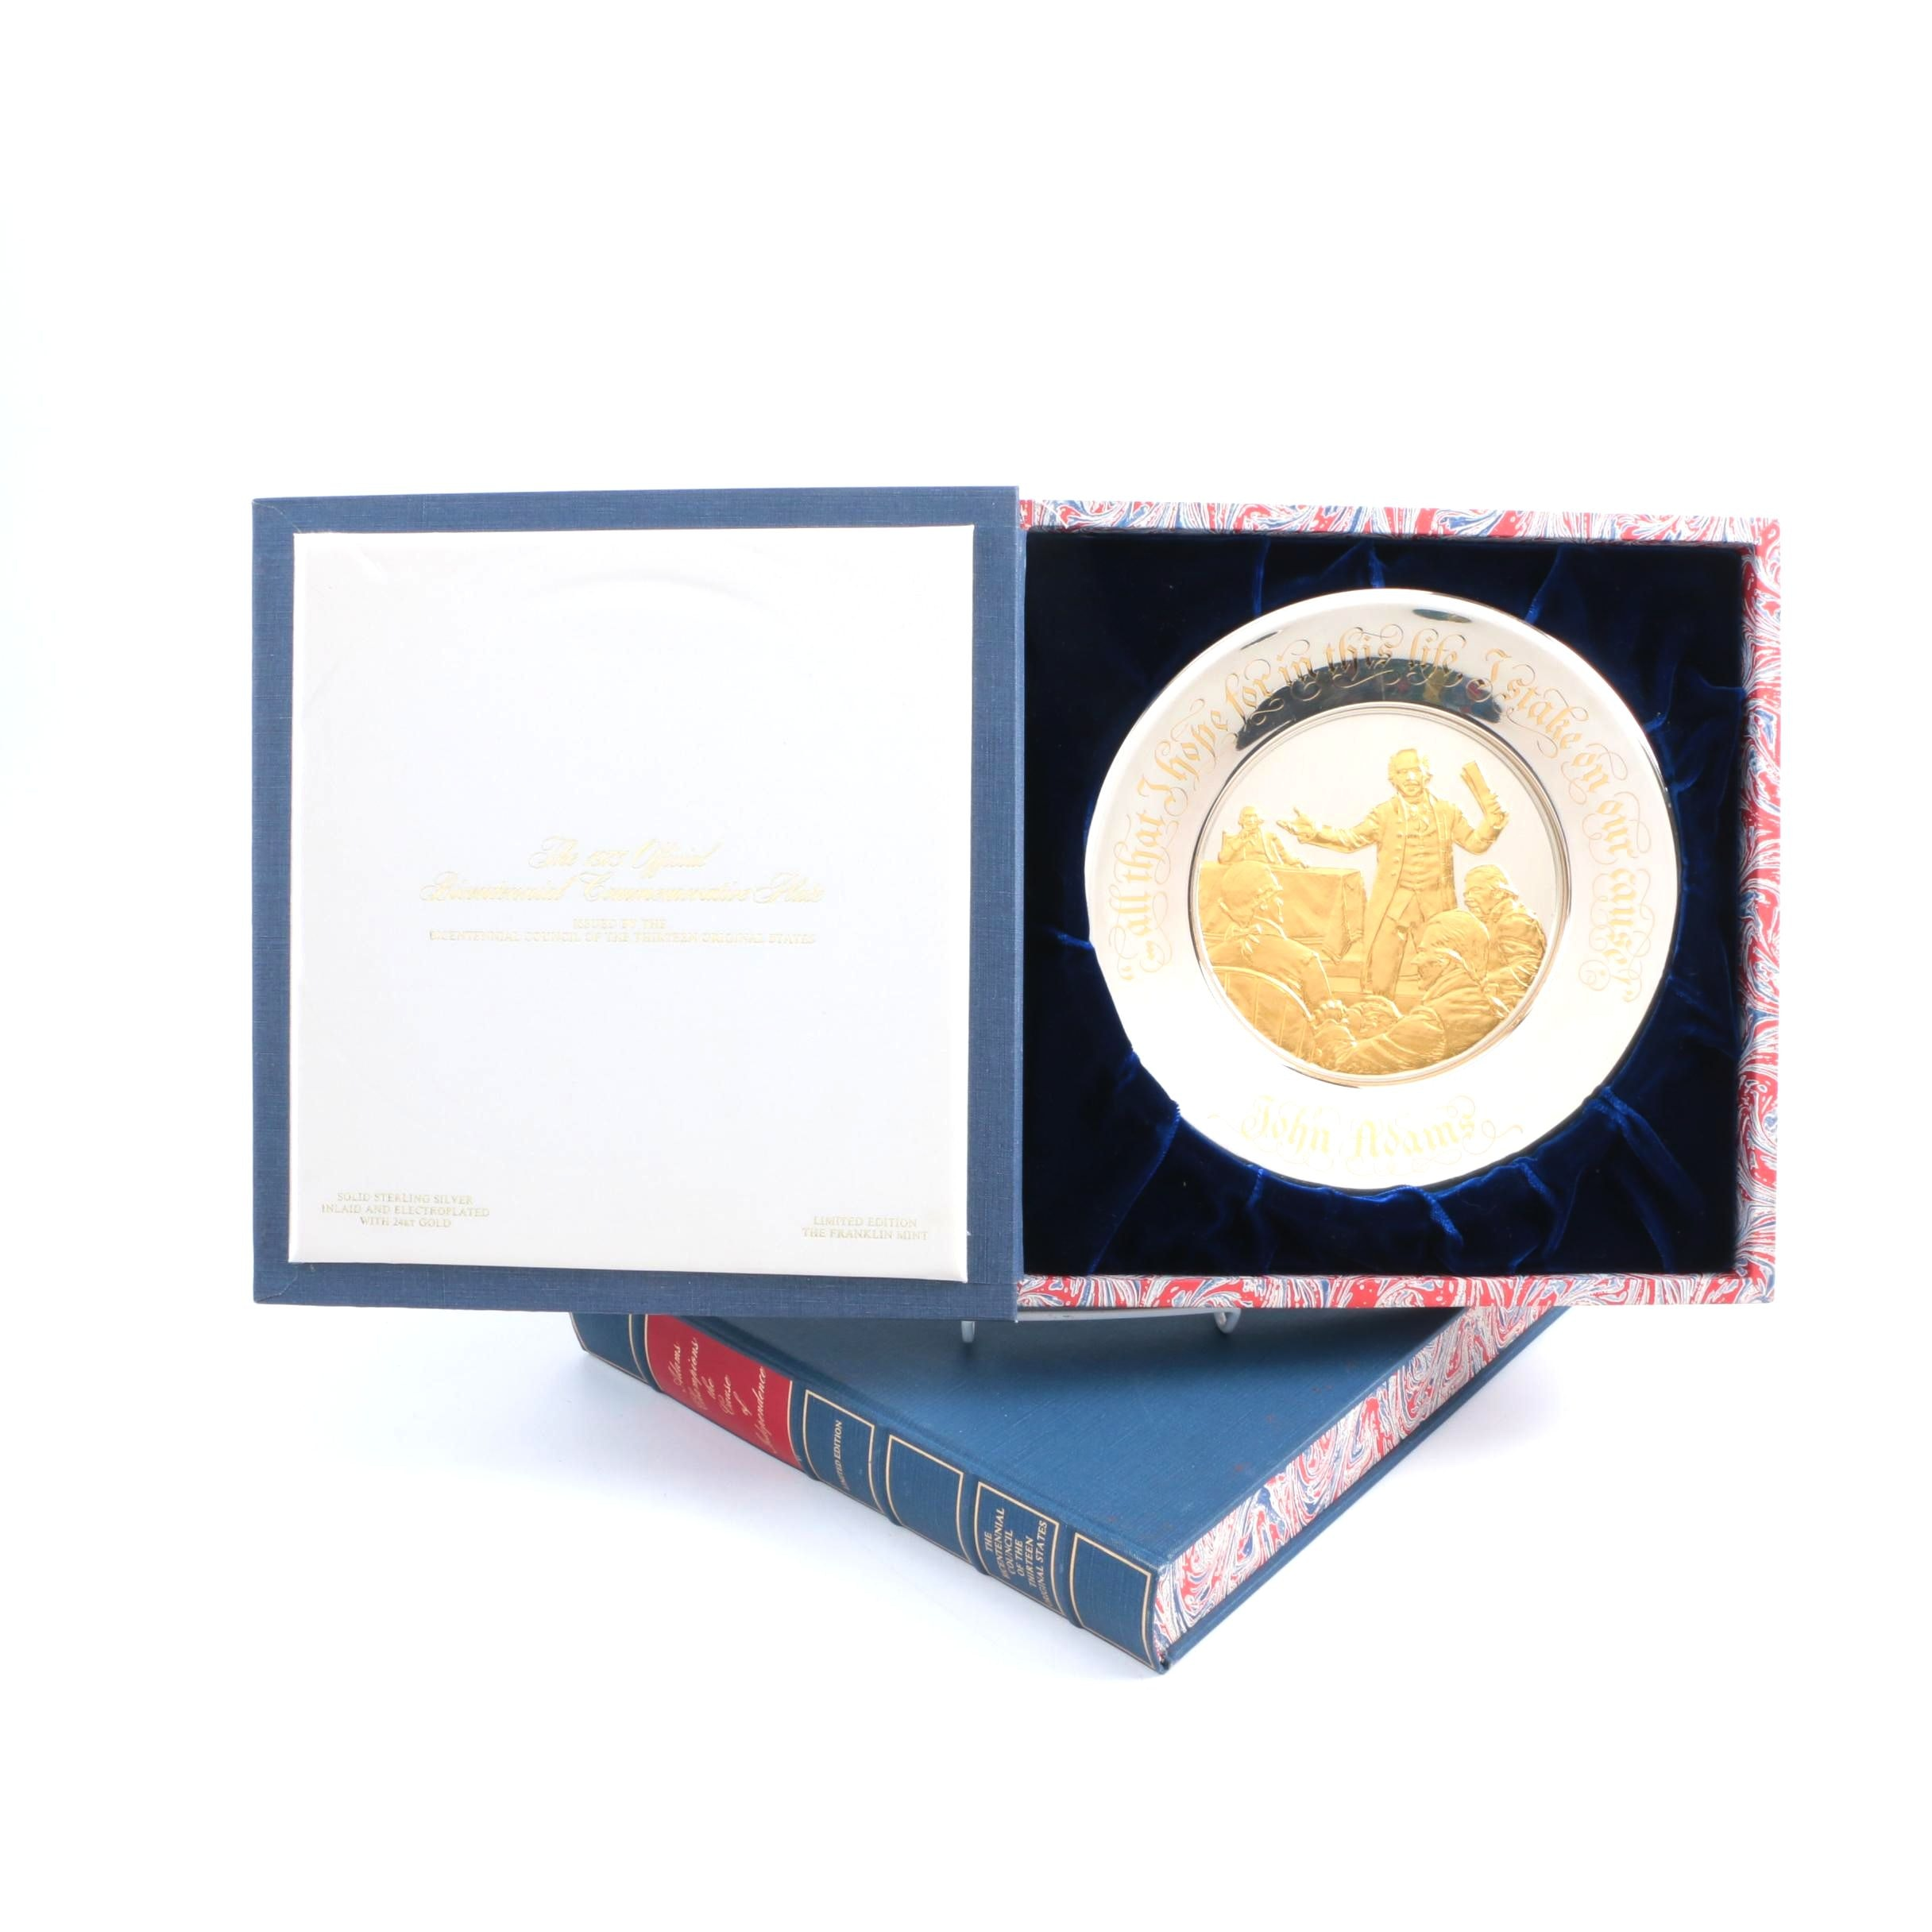 1973-74 Franklin Mint Bicentennial Commemorative Sterling and 24K Gold Plates